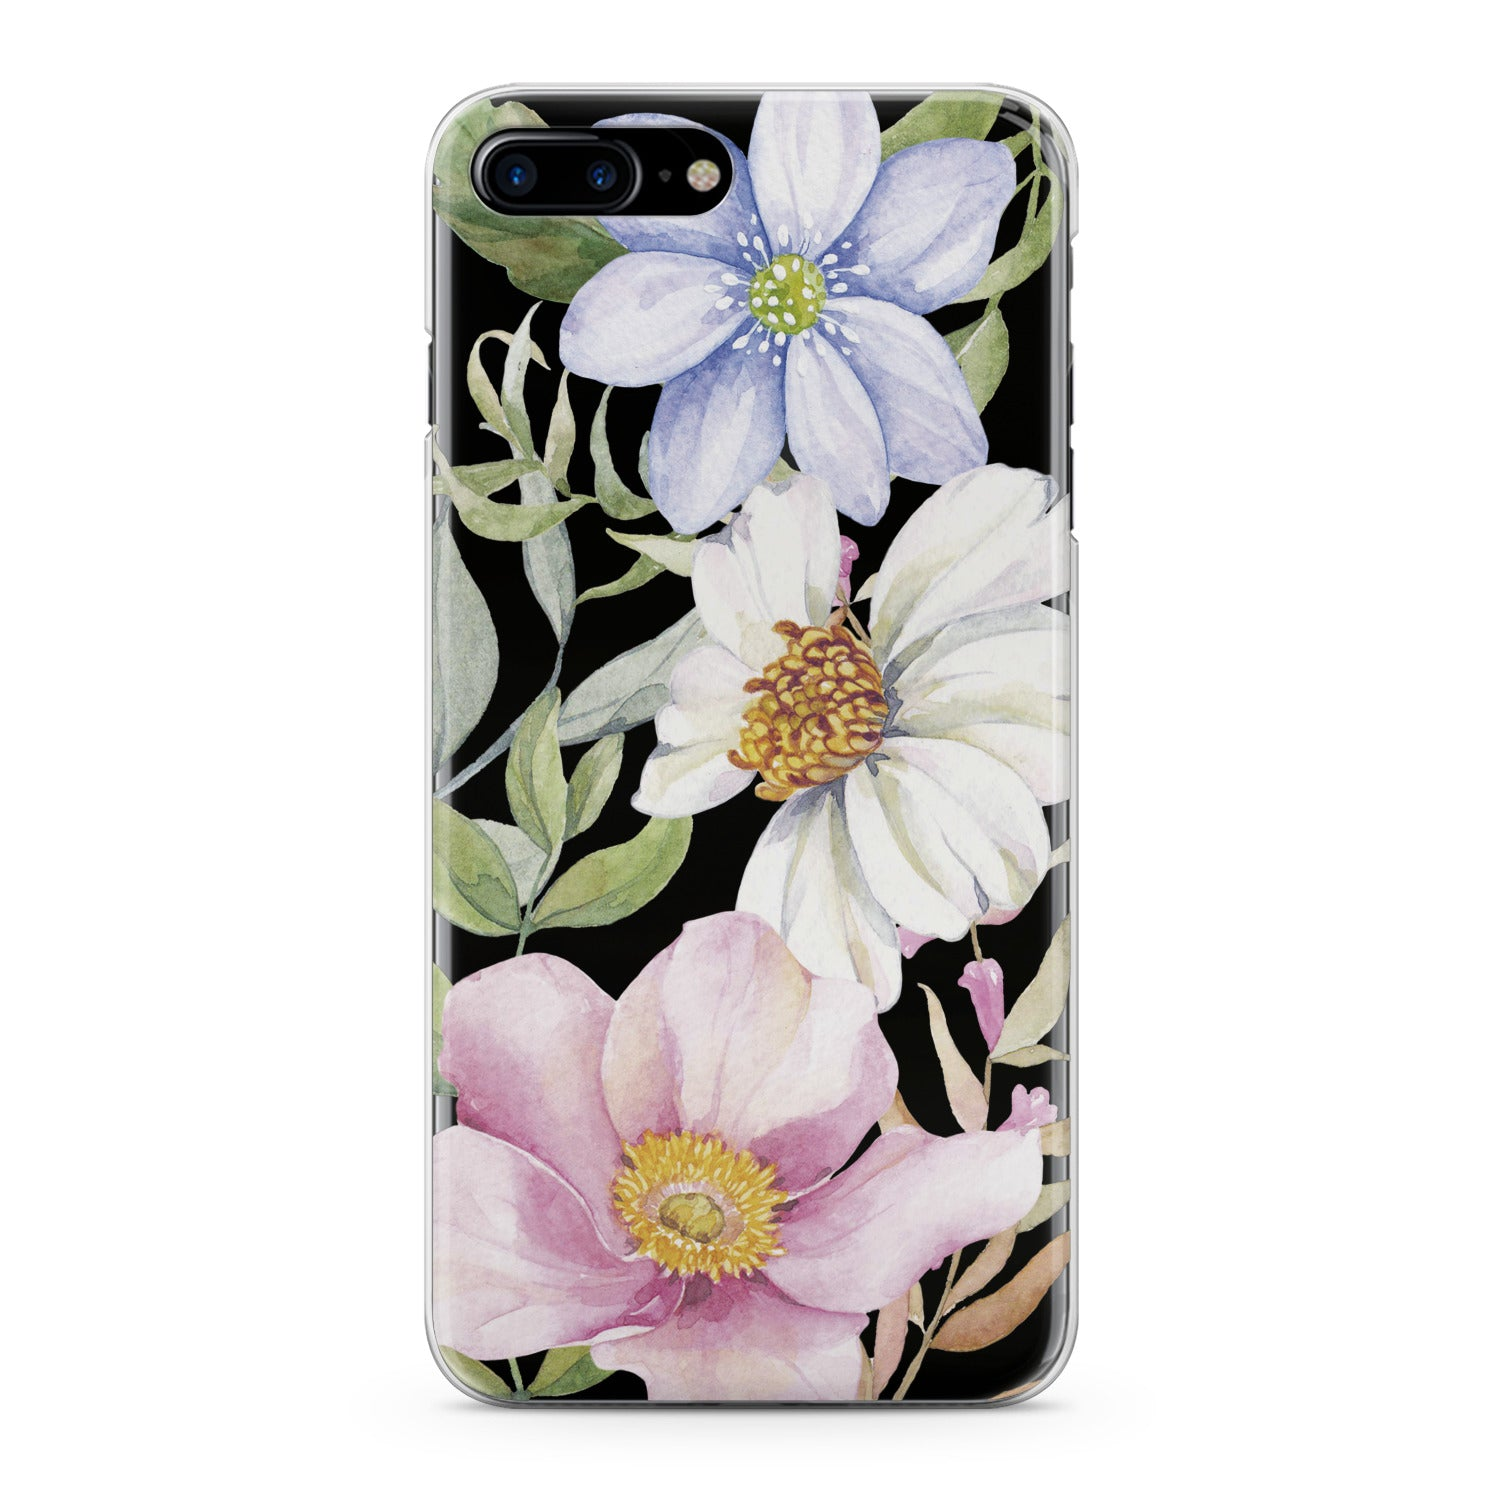 Lex Altern Gentle Blossom Phone Case for your iPhone & Android phone.